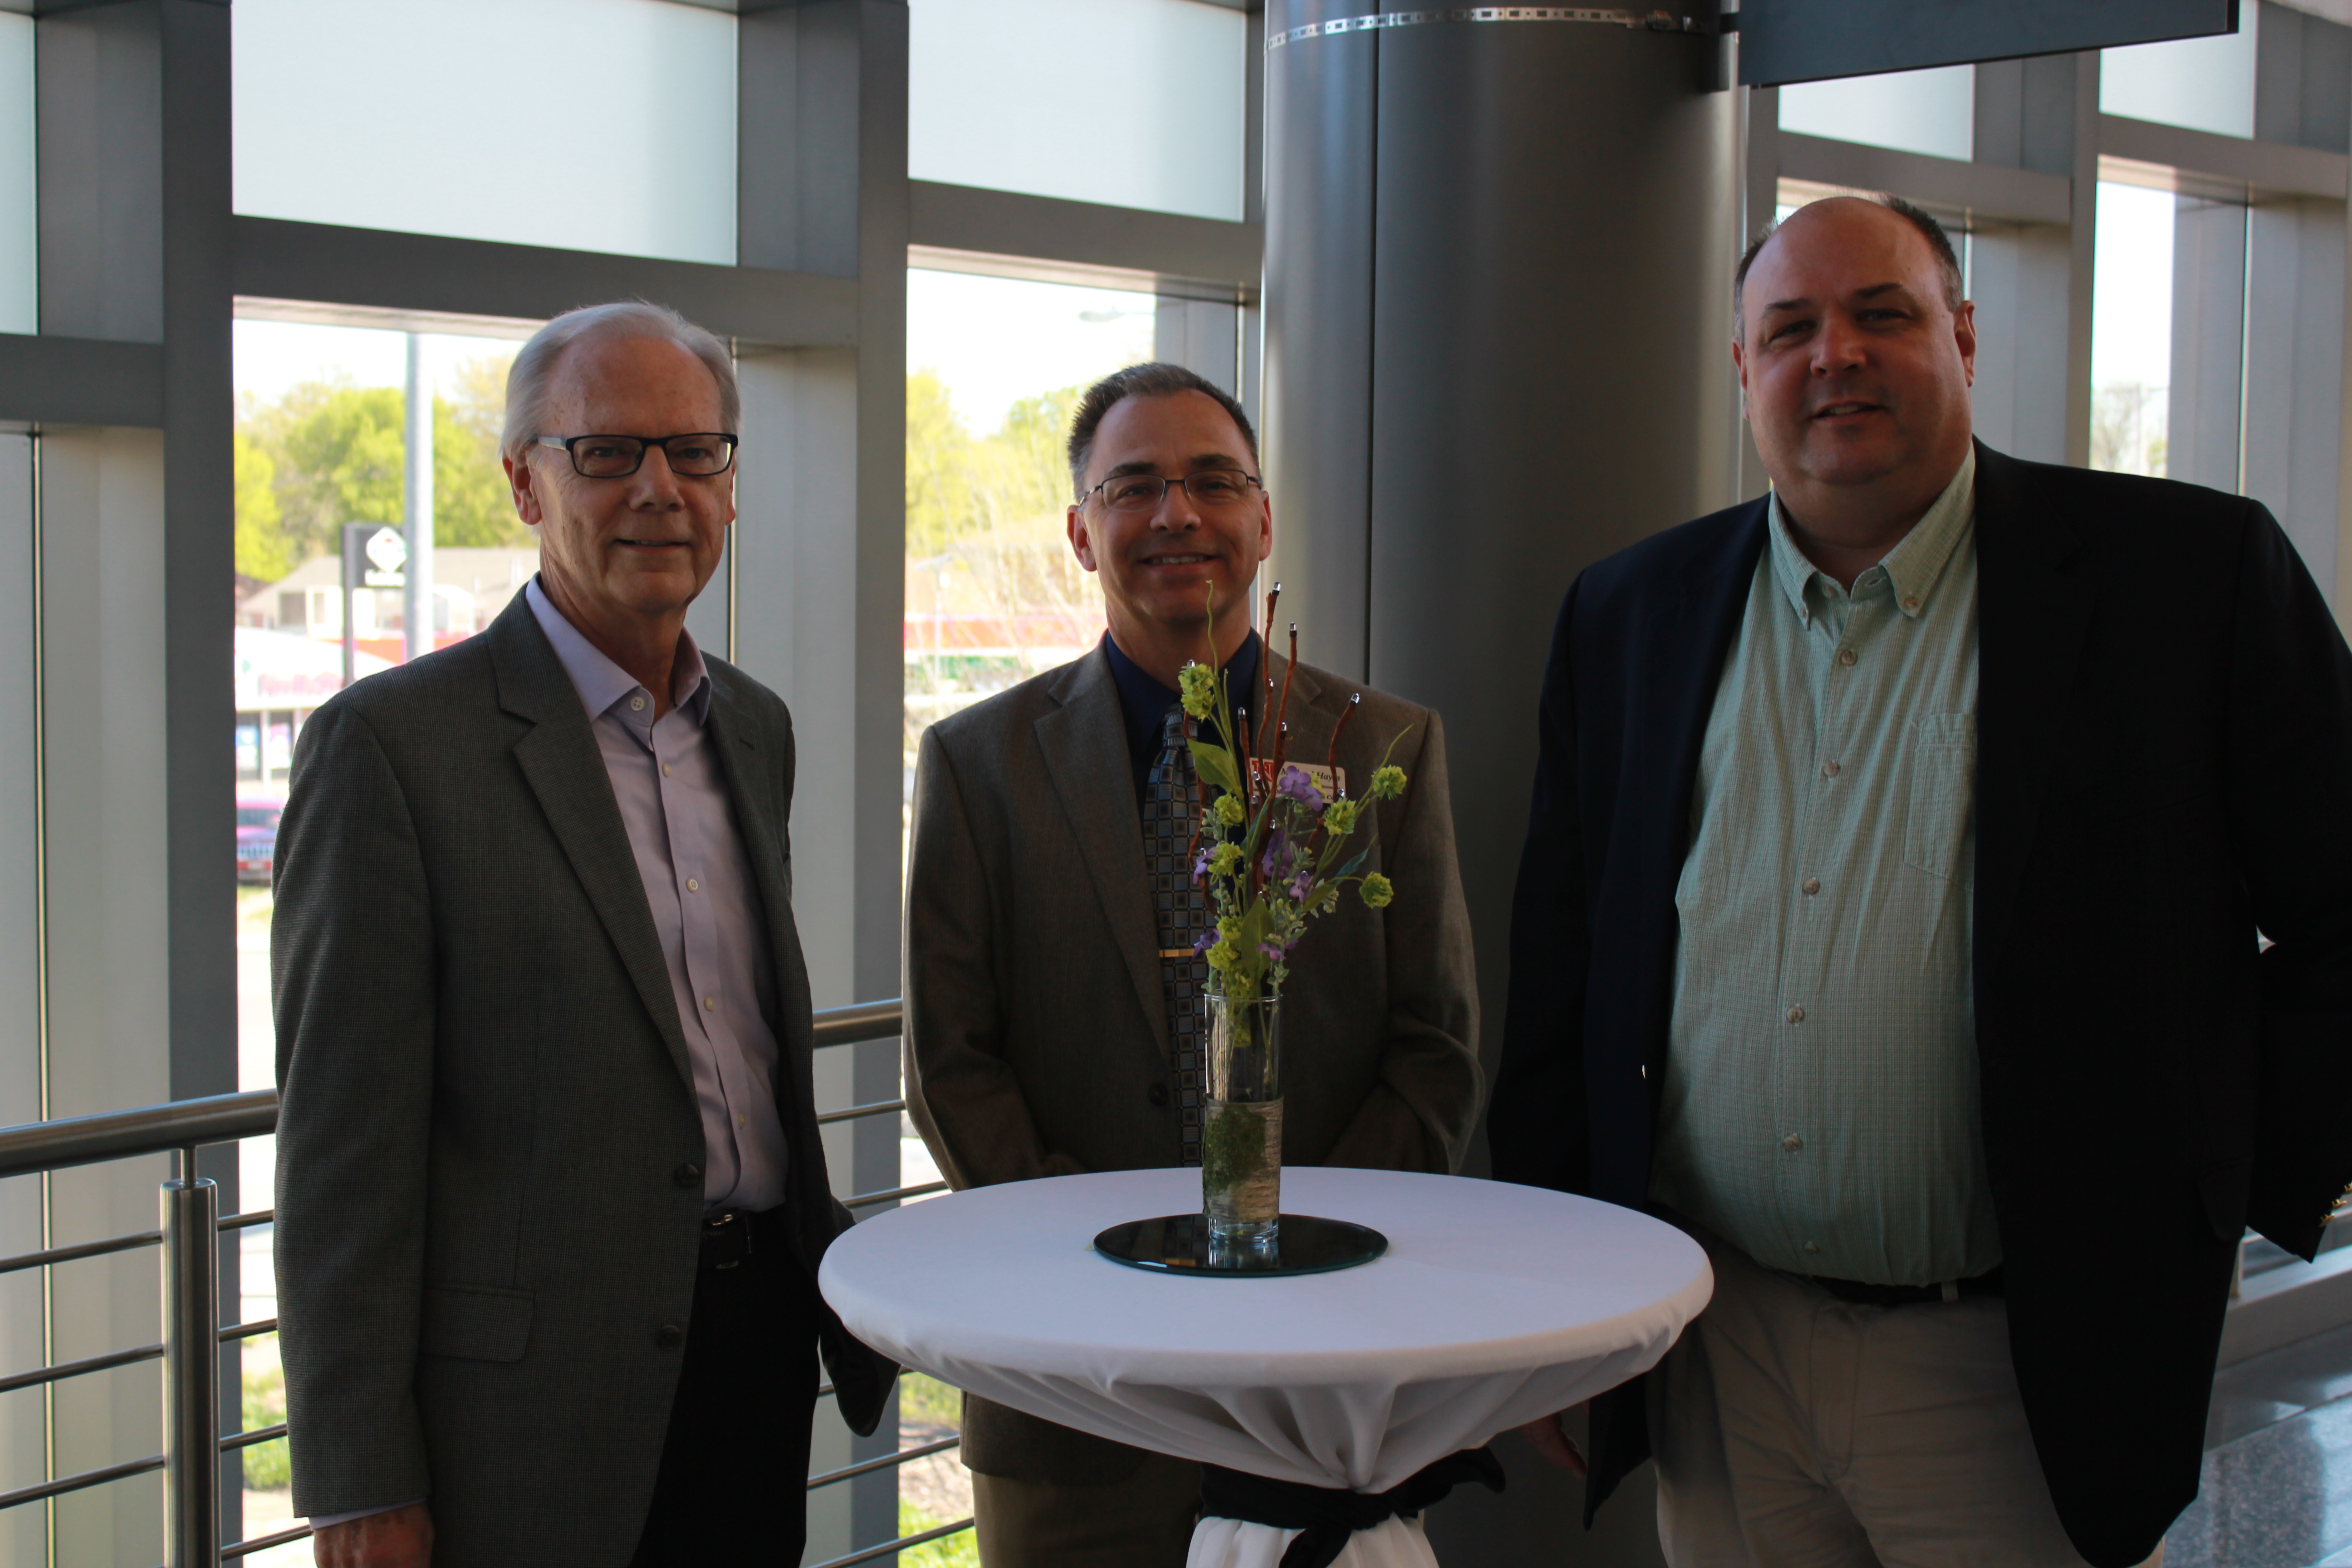 From left to right: NDMC founder Donald Wilhite, former NDMC director Michael Hayes and current NDMC director Mark Svoboda at the Center's 20-year anniversary in 2015.